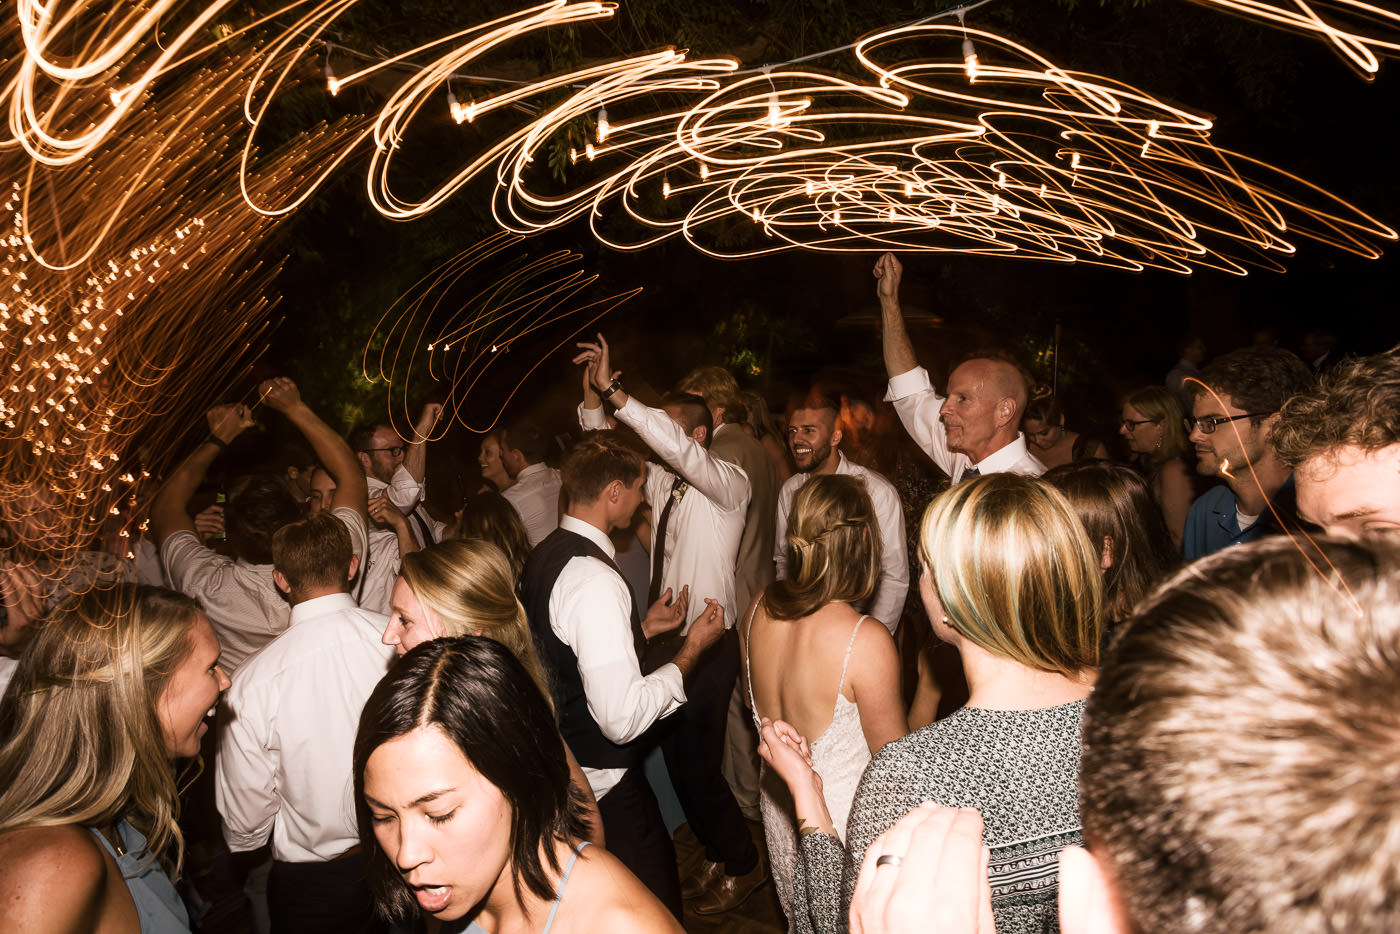 Wedding photographer artistically captures the fun of the reception after the wedding in Temecula California